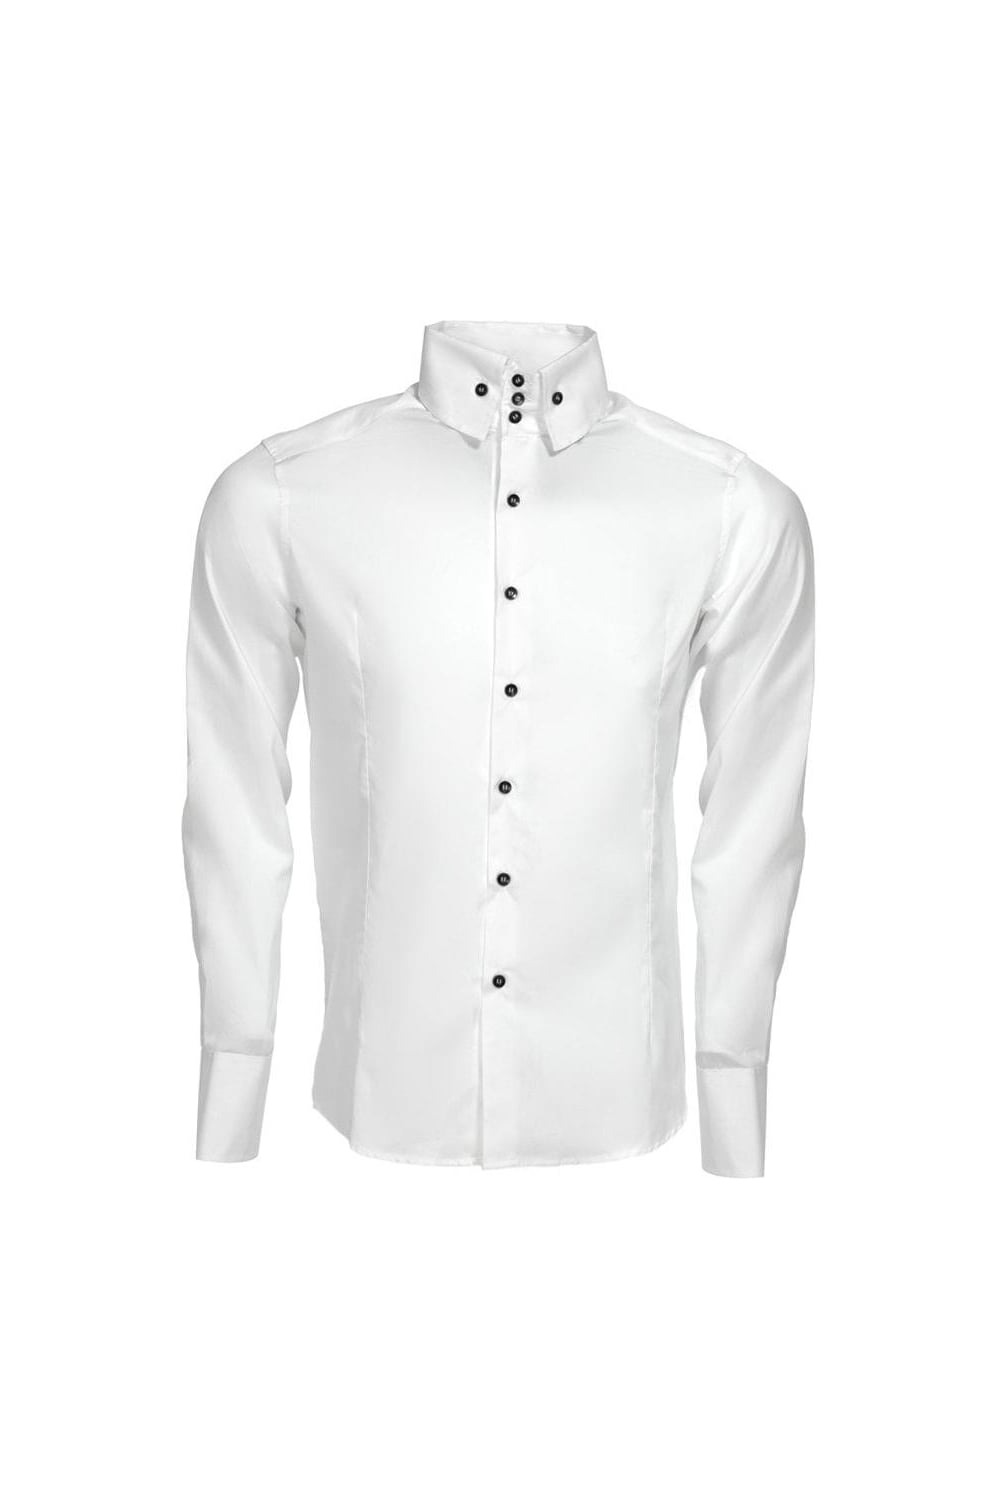 Intro 001 3 button high collar shirt white men 39 s for Mens button collar shirts